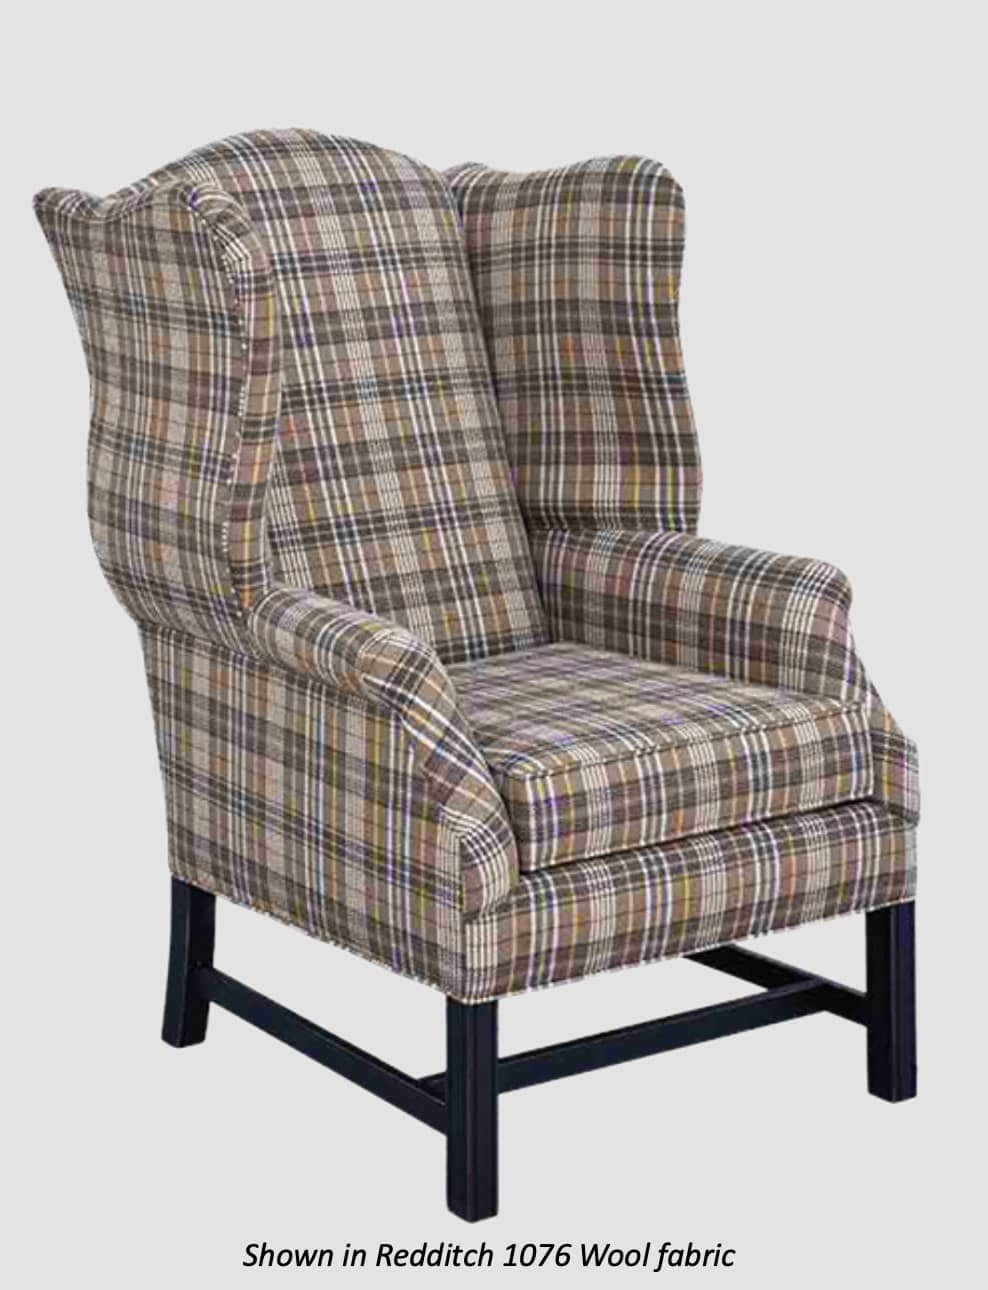 Town & Country Furnishings Southampton Chair from the American Country Collection